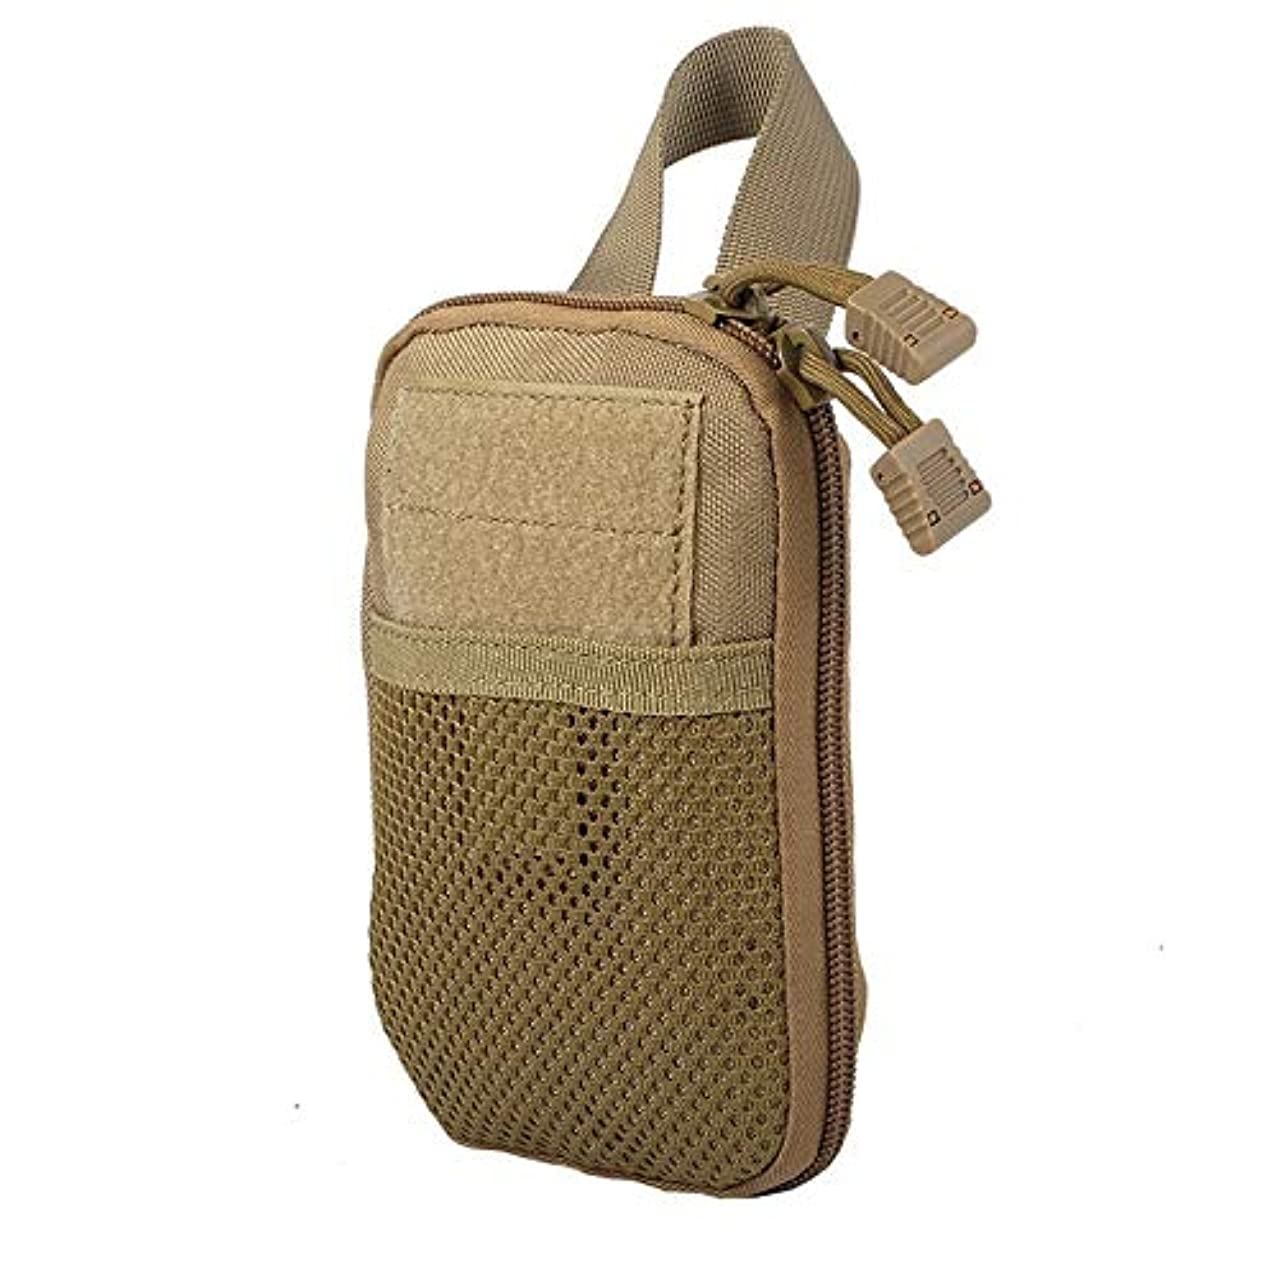 CH Military Molle EDC Pouch Mesh Tools Accessory Pouches Tactical Waist Hunting Bags Outdoor Flashlight Magazine Pocket